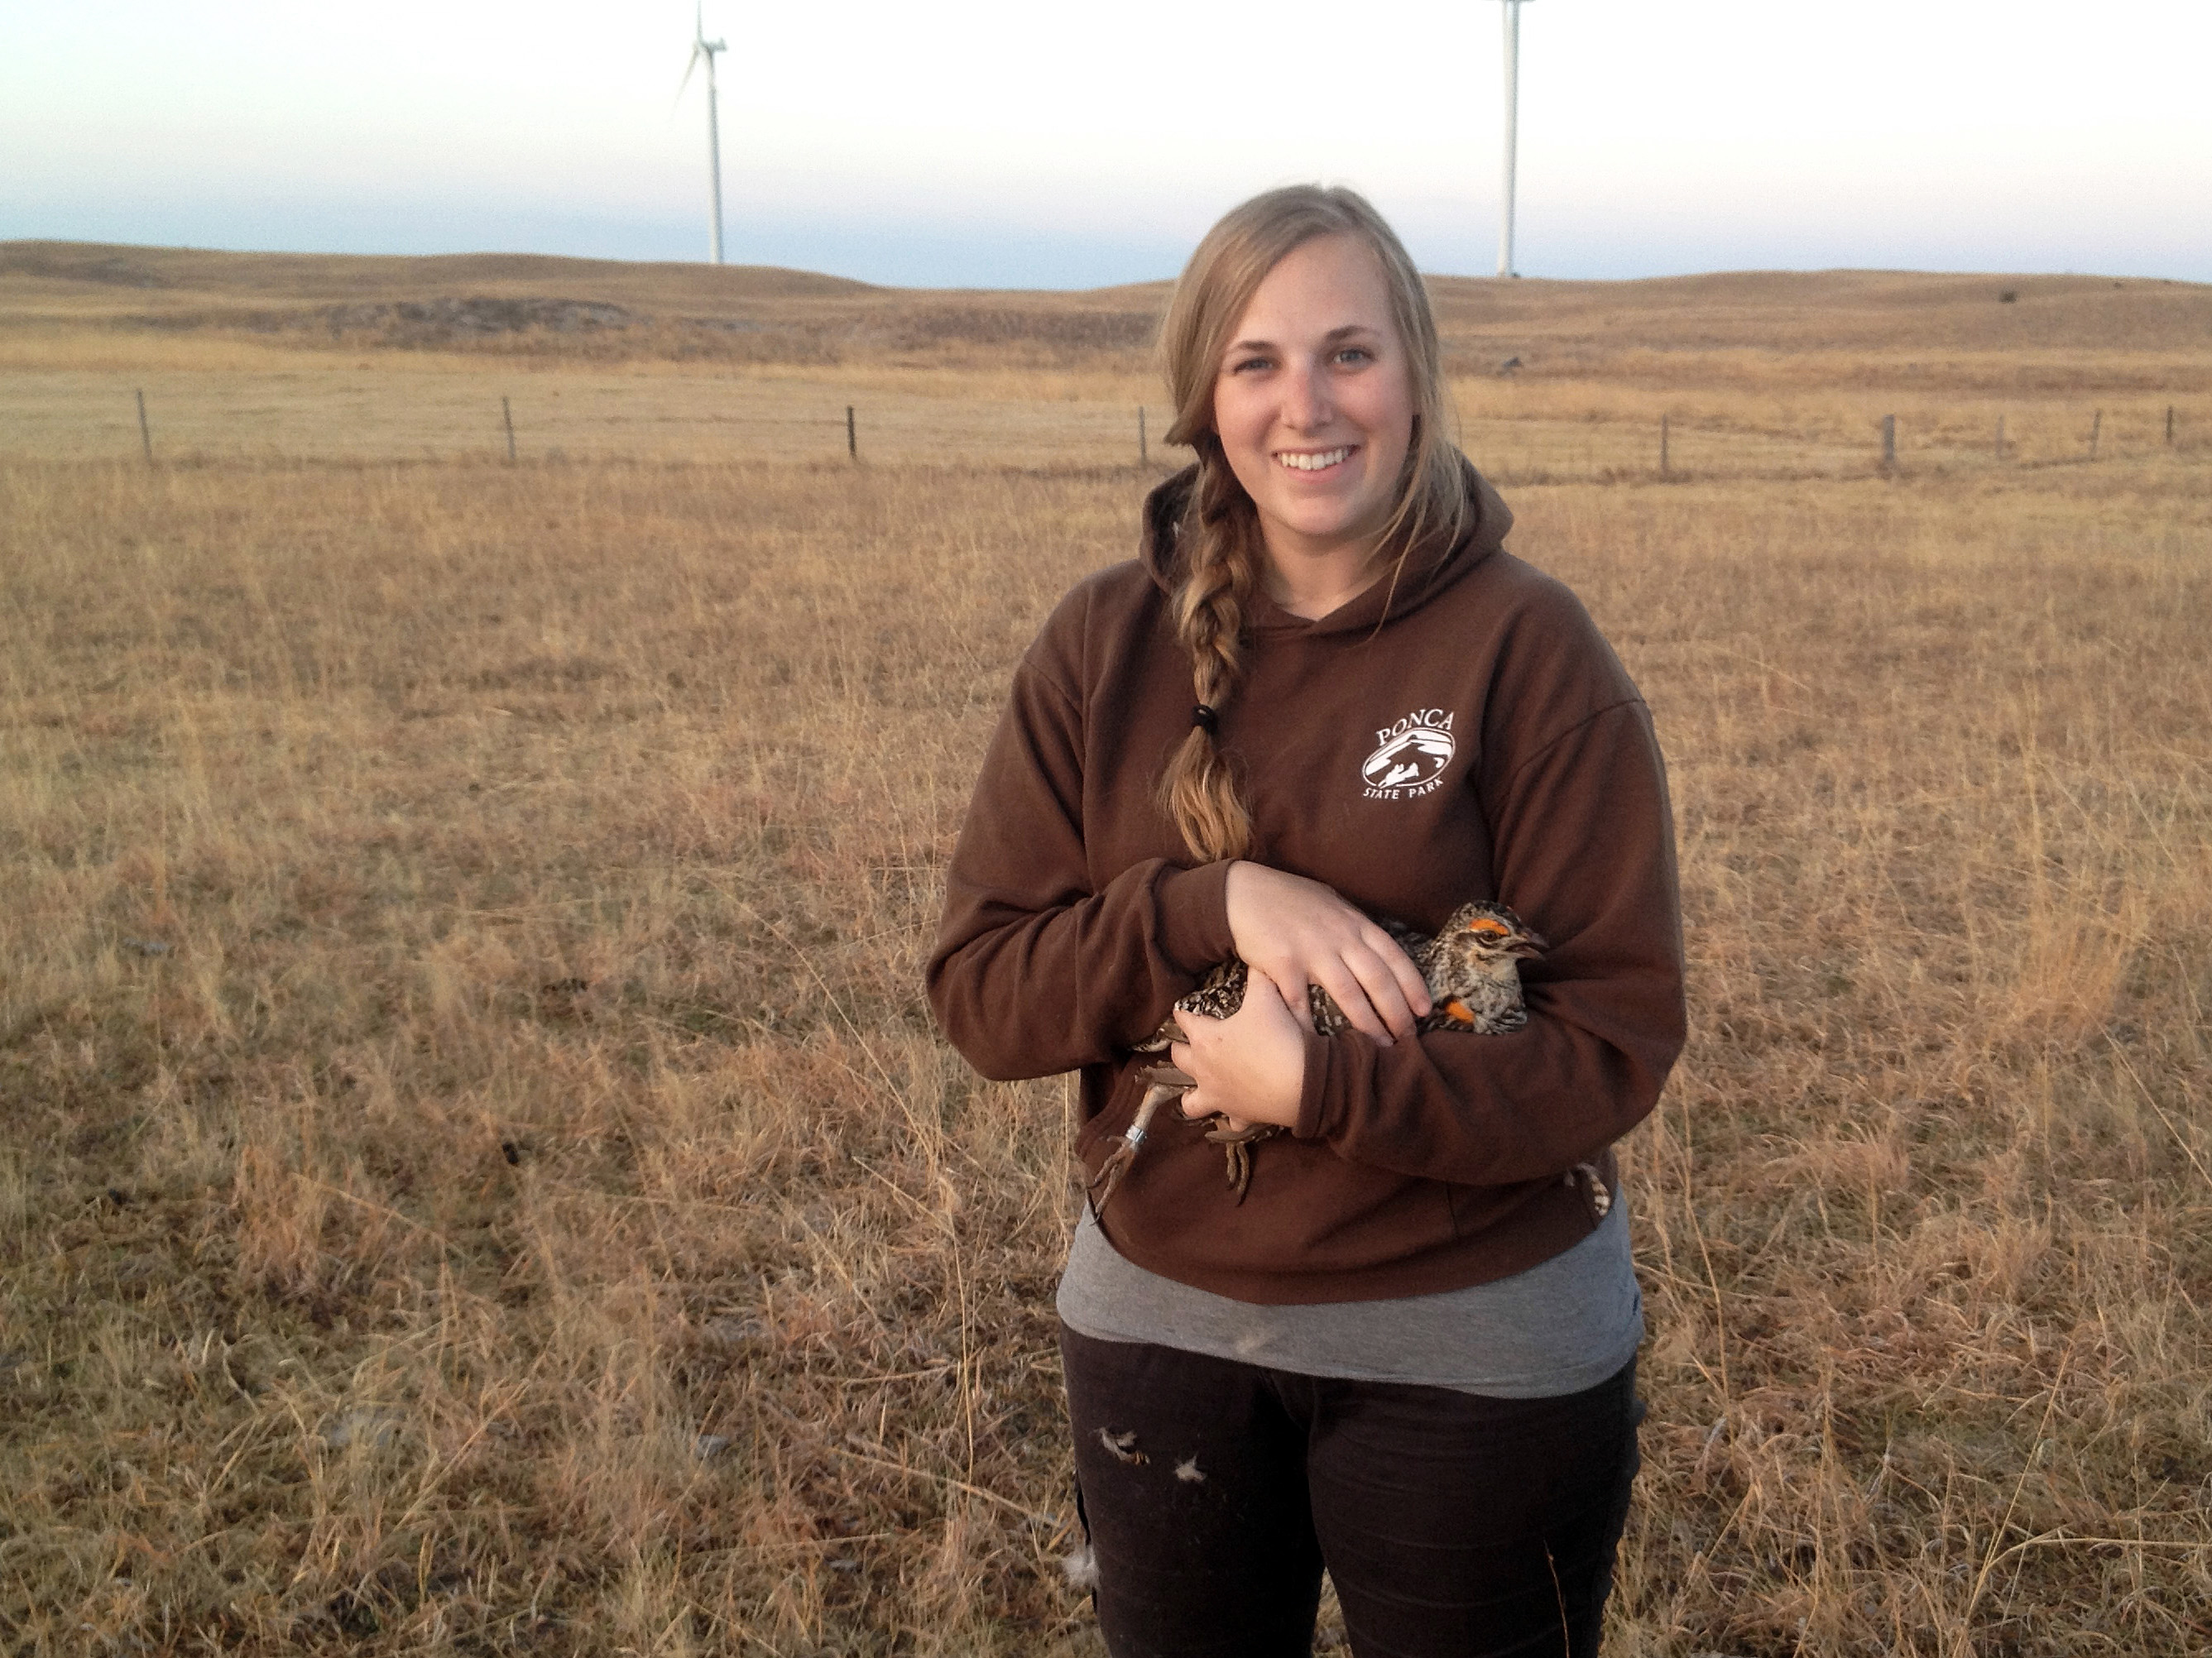 Rapid development of wind energy across the Great Plains has spurred concern about potential effects on grassland birds, the most rapidly declining avian group in North American. But a new study by University of Nebraska-Lincoln researchers shows that at least one grassland bird &mdash; the endangered greater prairie-chicken &mdash; pays little attention to small-scale wind energy infrastructure in choosing nesting sites.</p>